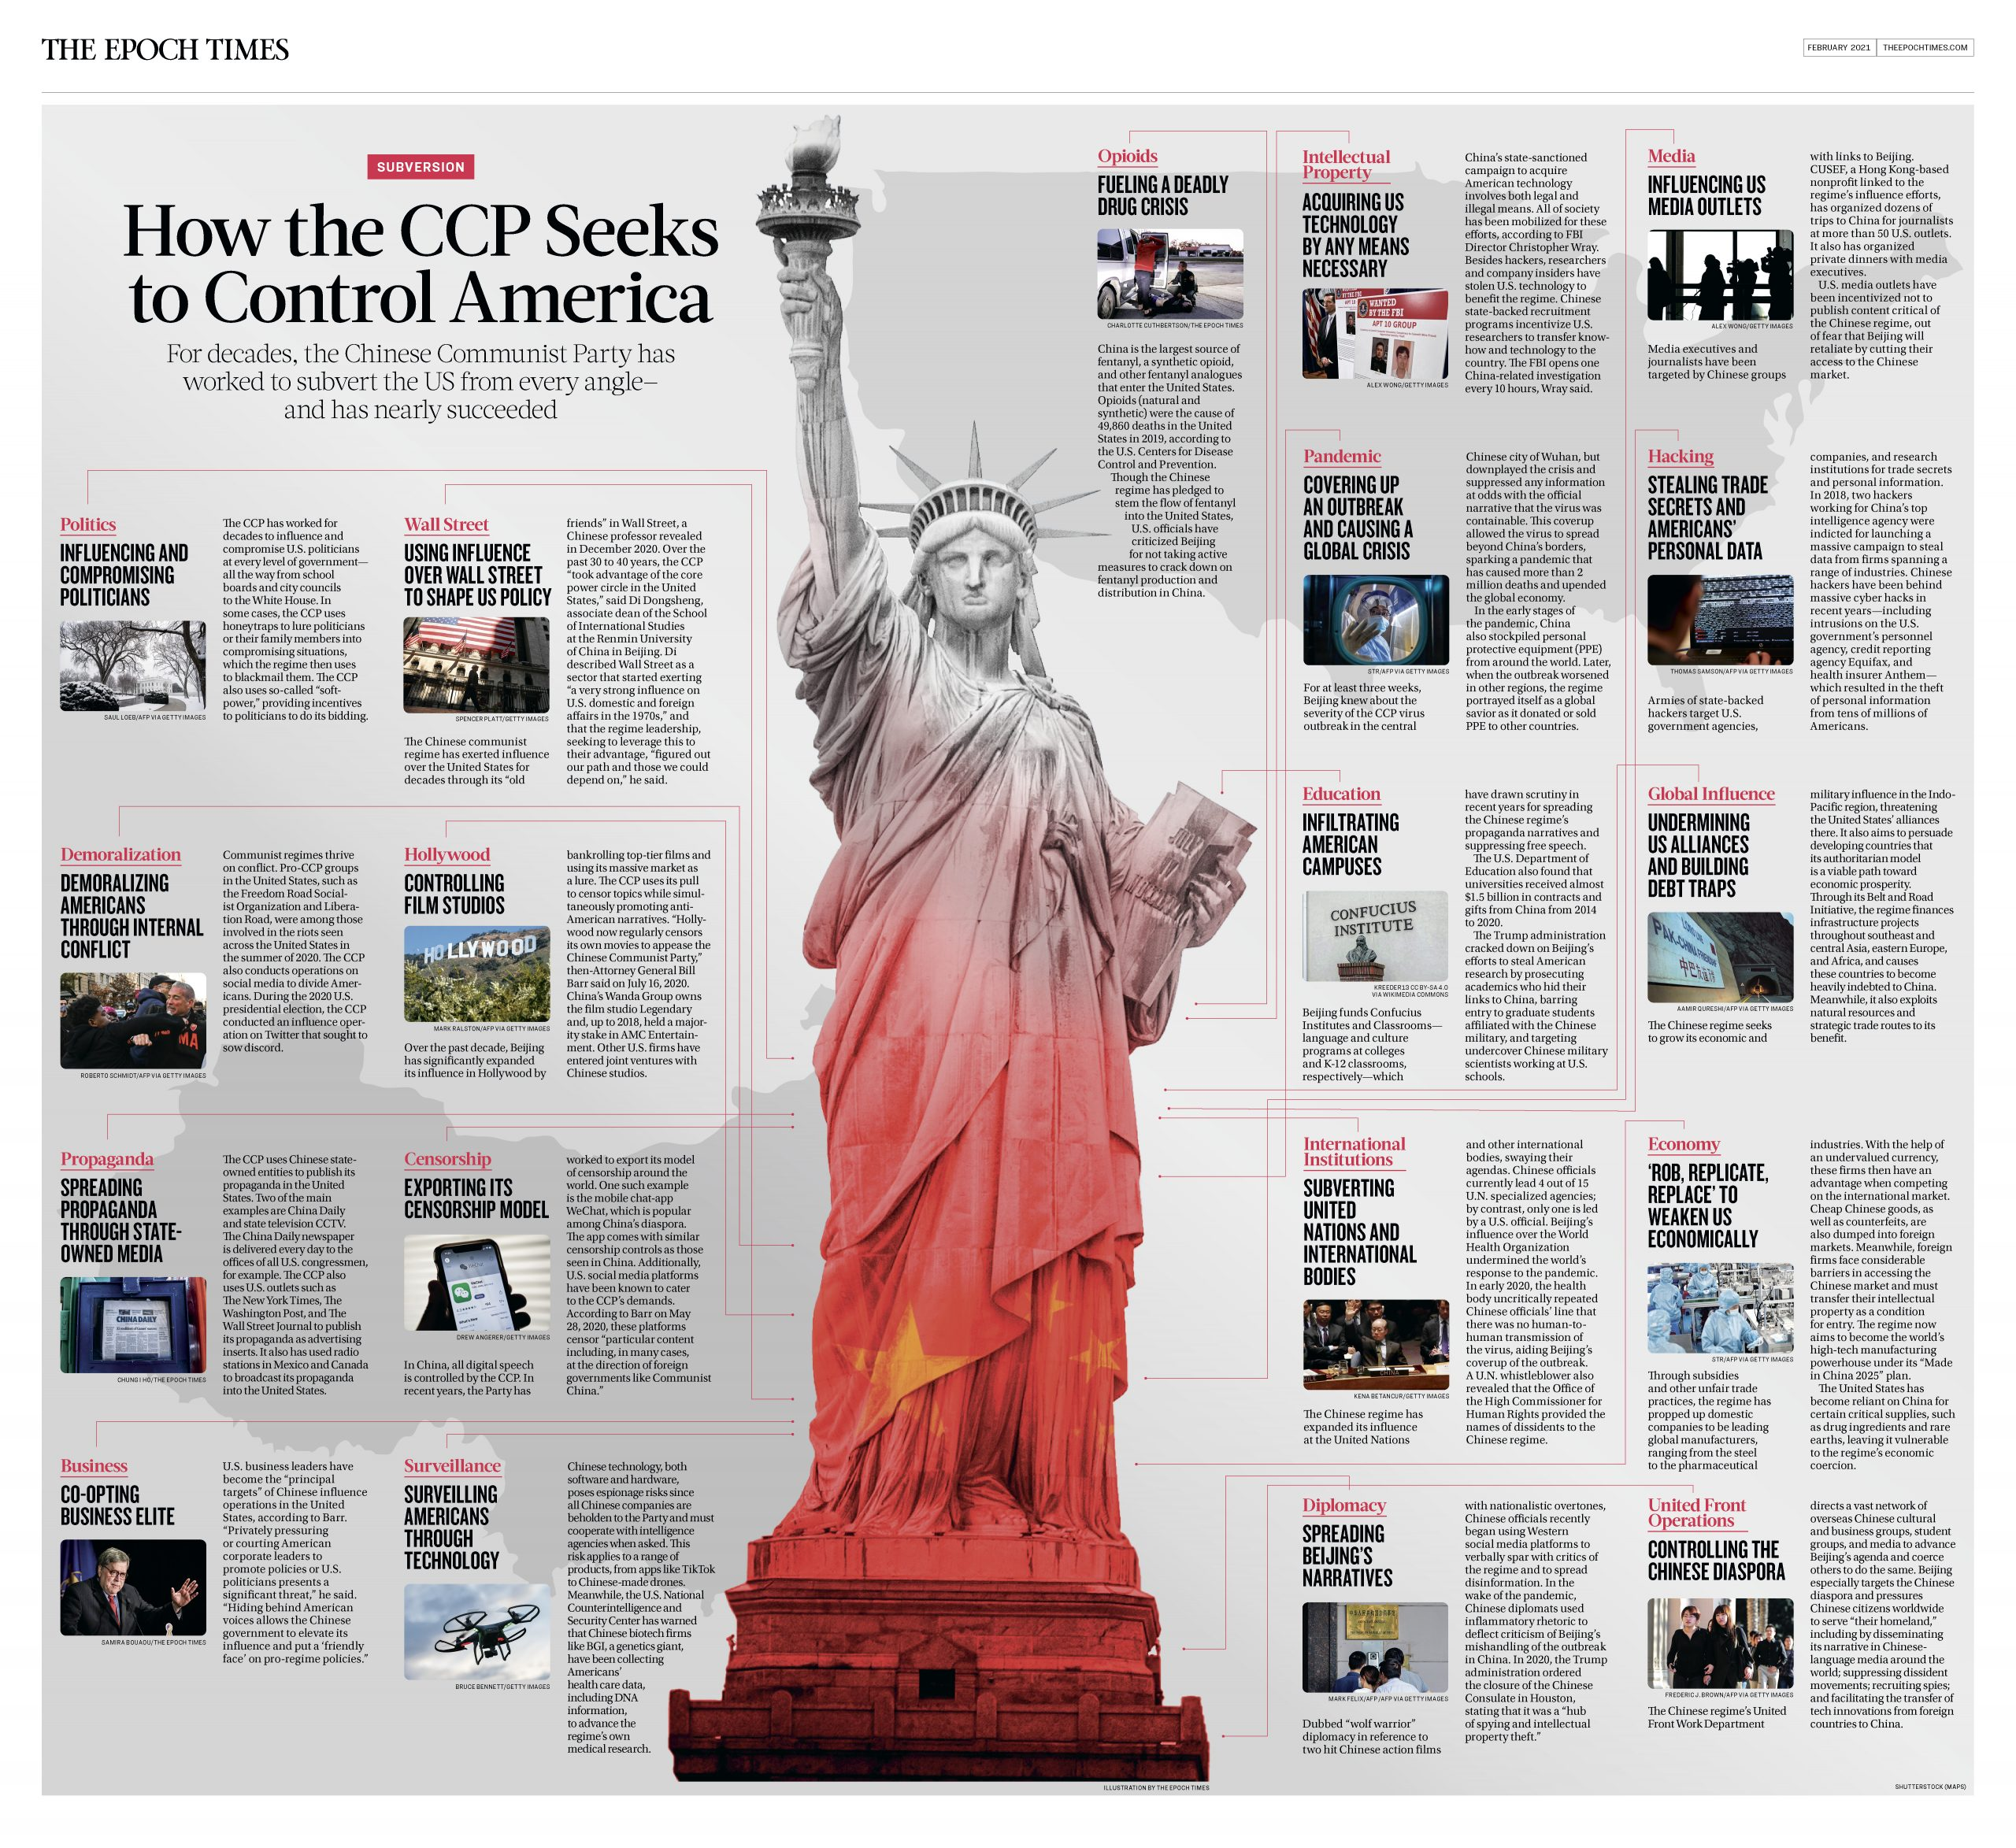 Infographic: How the CCP Seeks to Control America